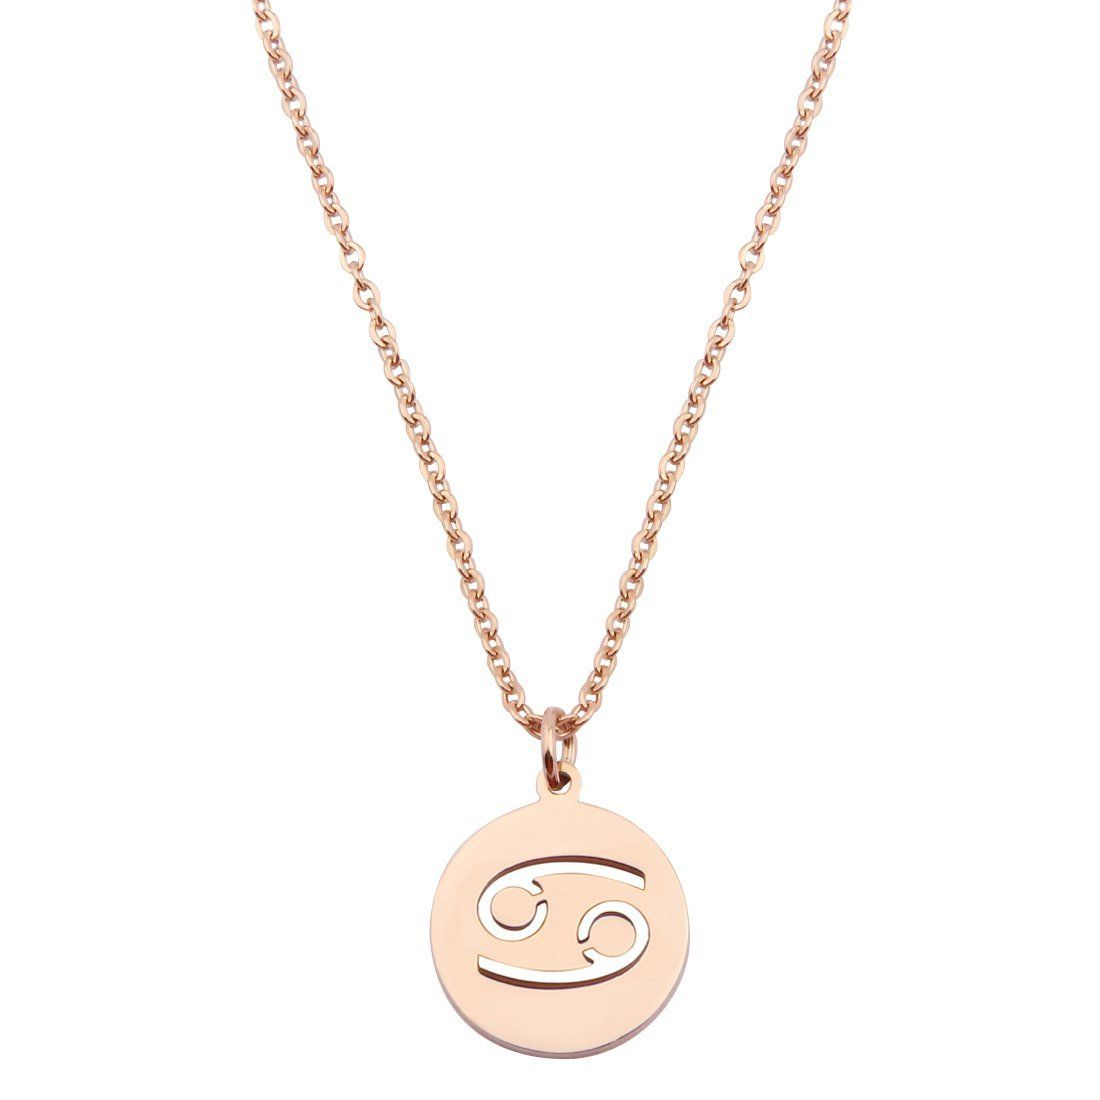 Amazon zodiac pendant necklace rose gold disc horoscope